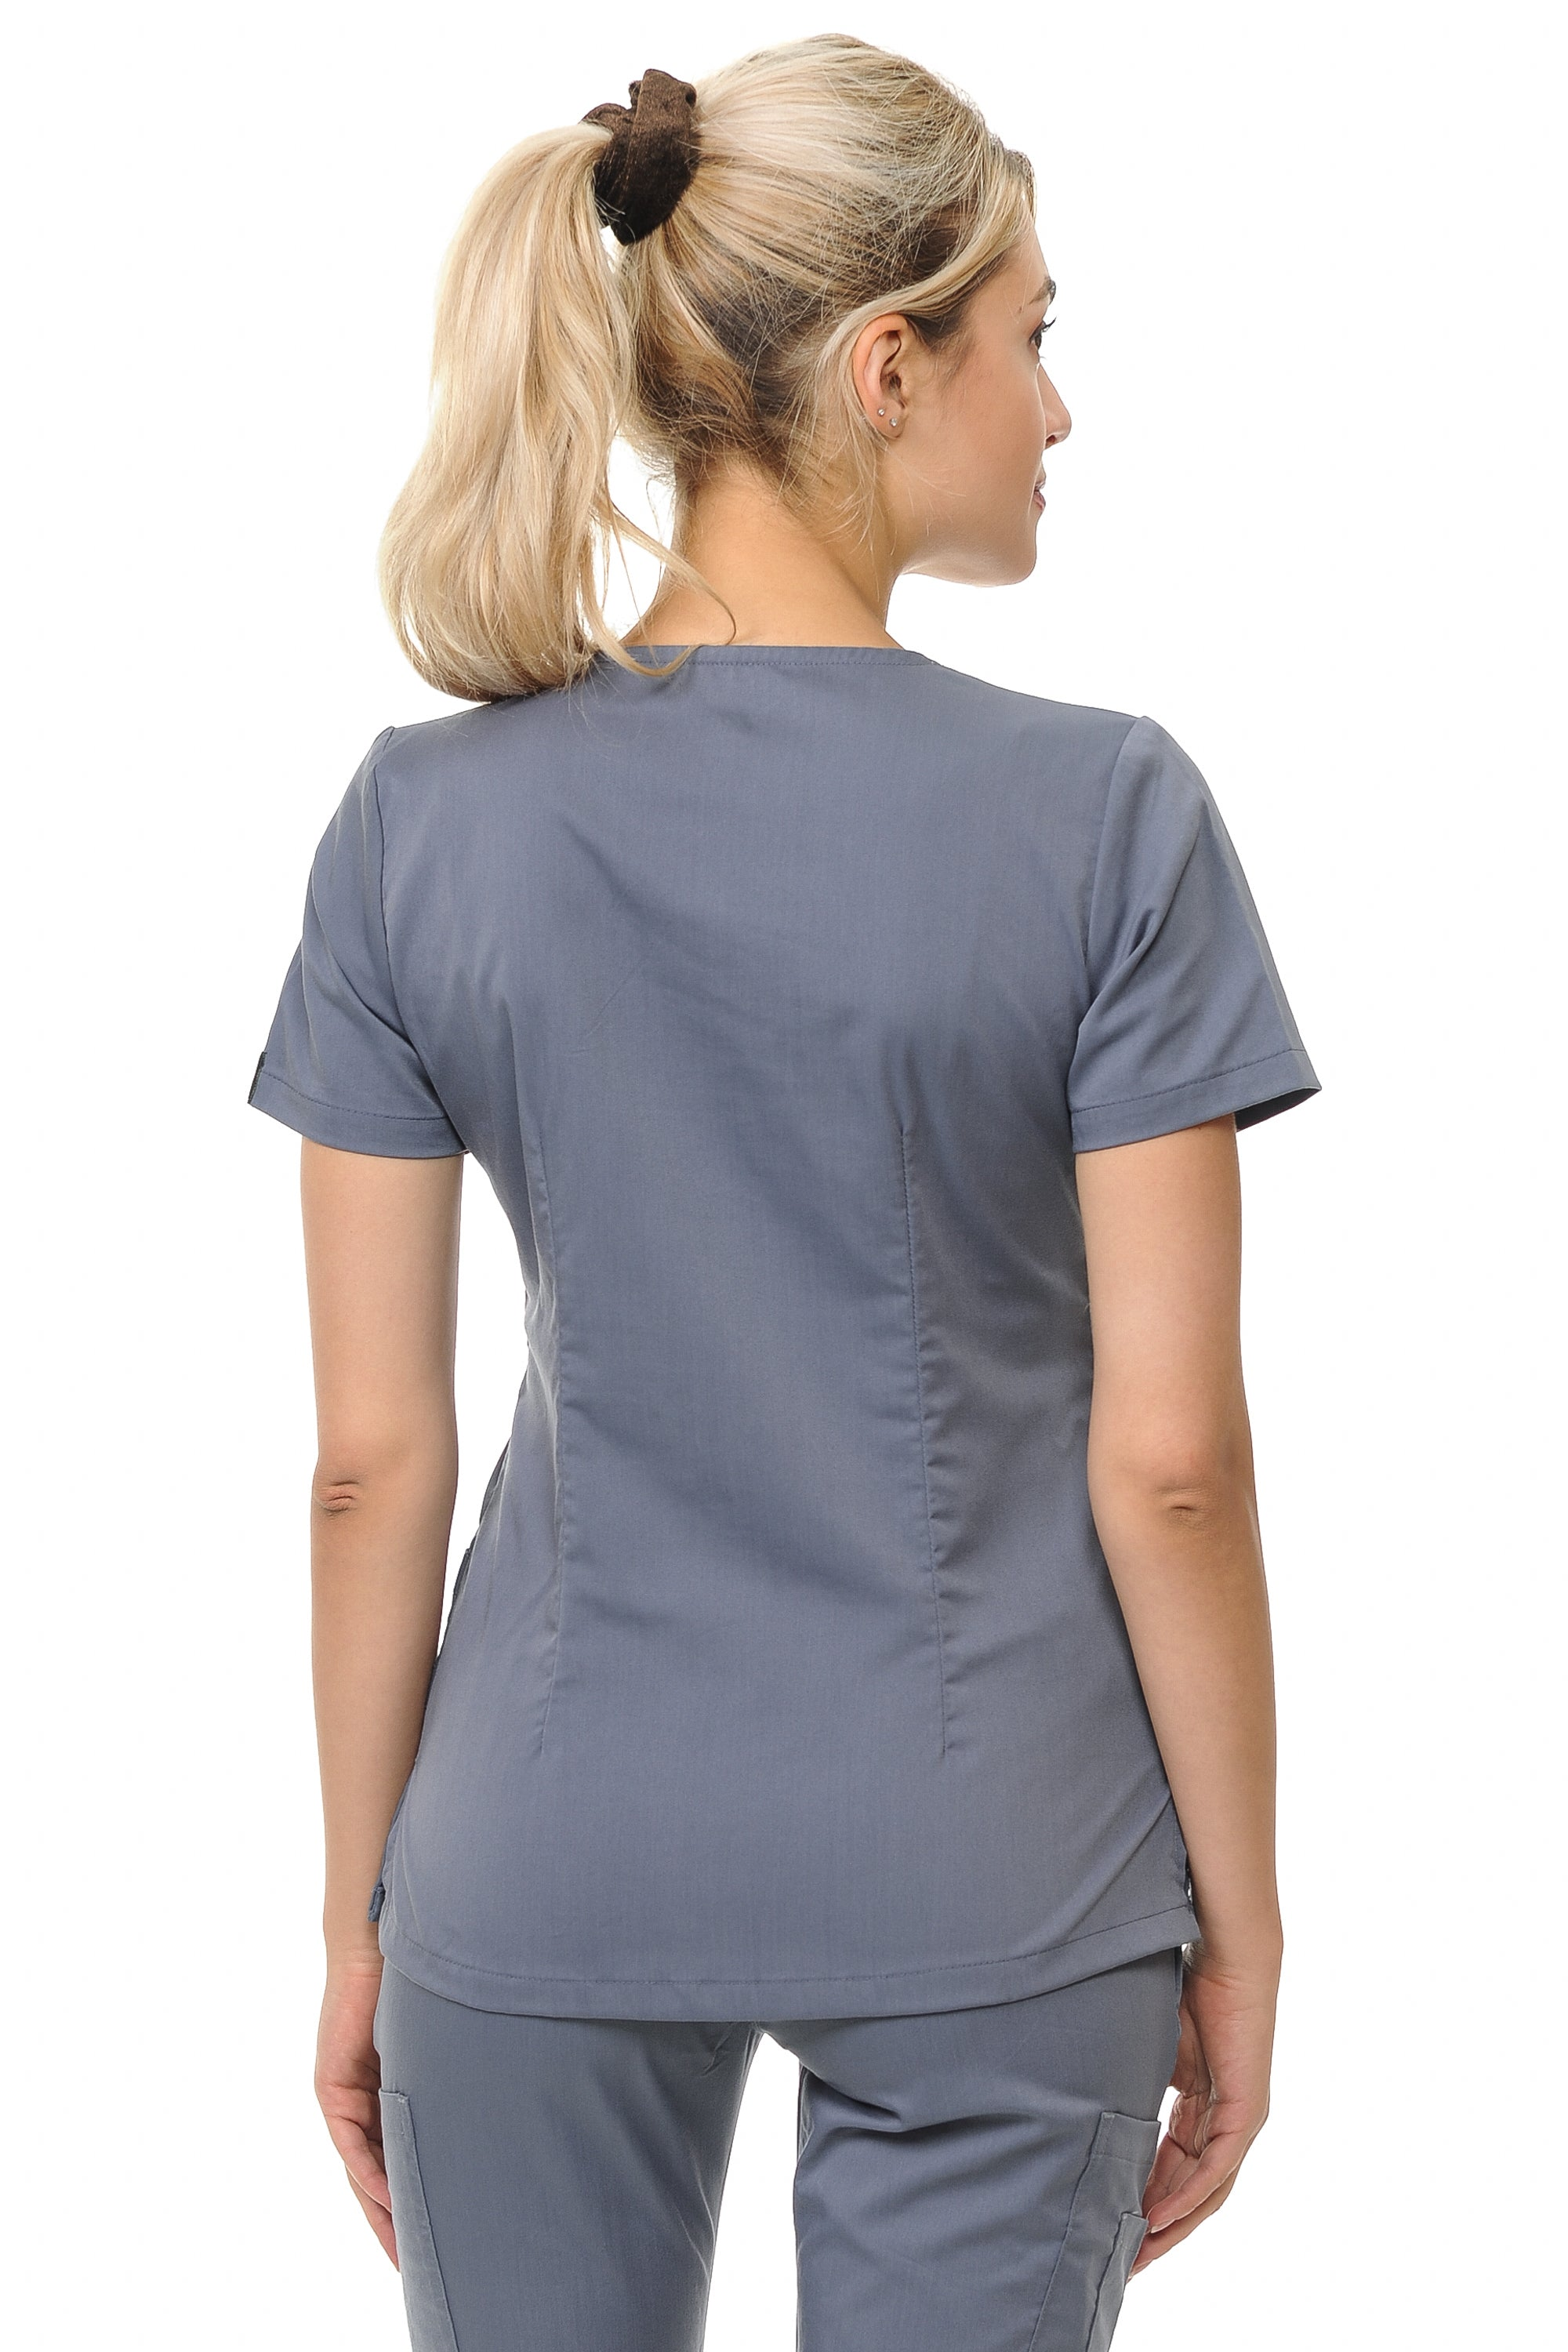 aa5375f9f1b Women's Polyester Rayon 4 Pocket Y-Neck Fitted Top – Platinum ...